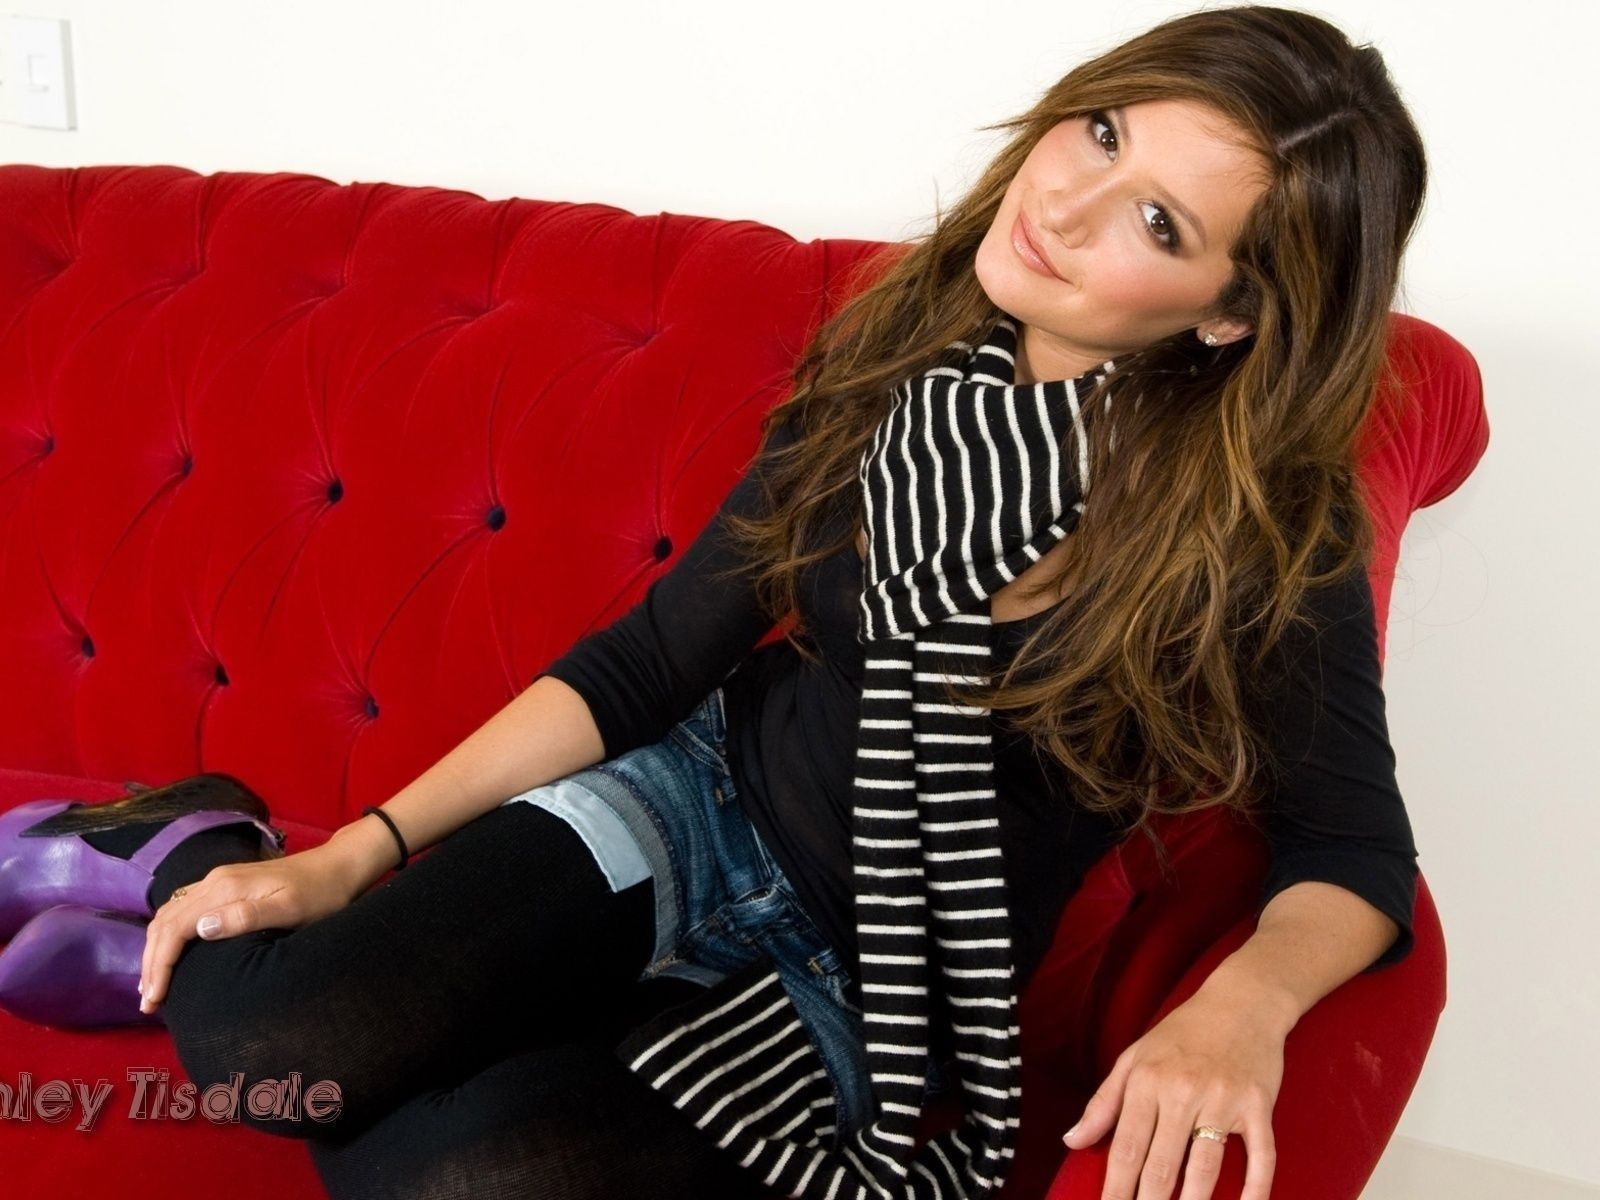 Ashley Tisdale #060 - 1600x1200 Wallpapers Pictures Photos Images